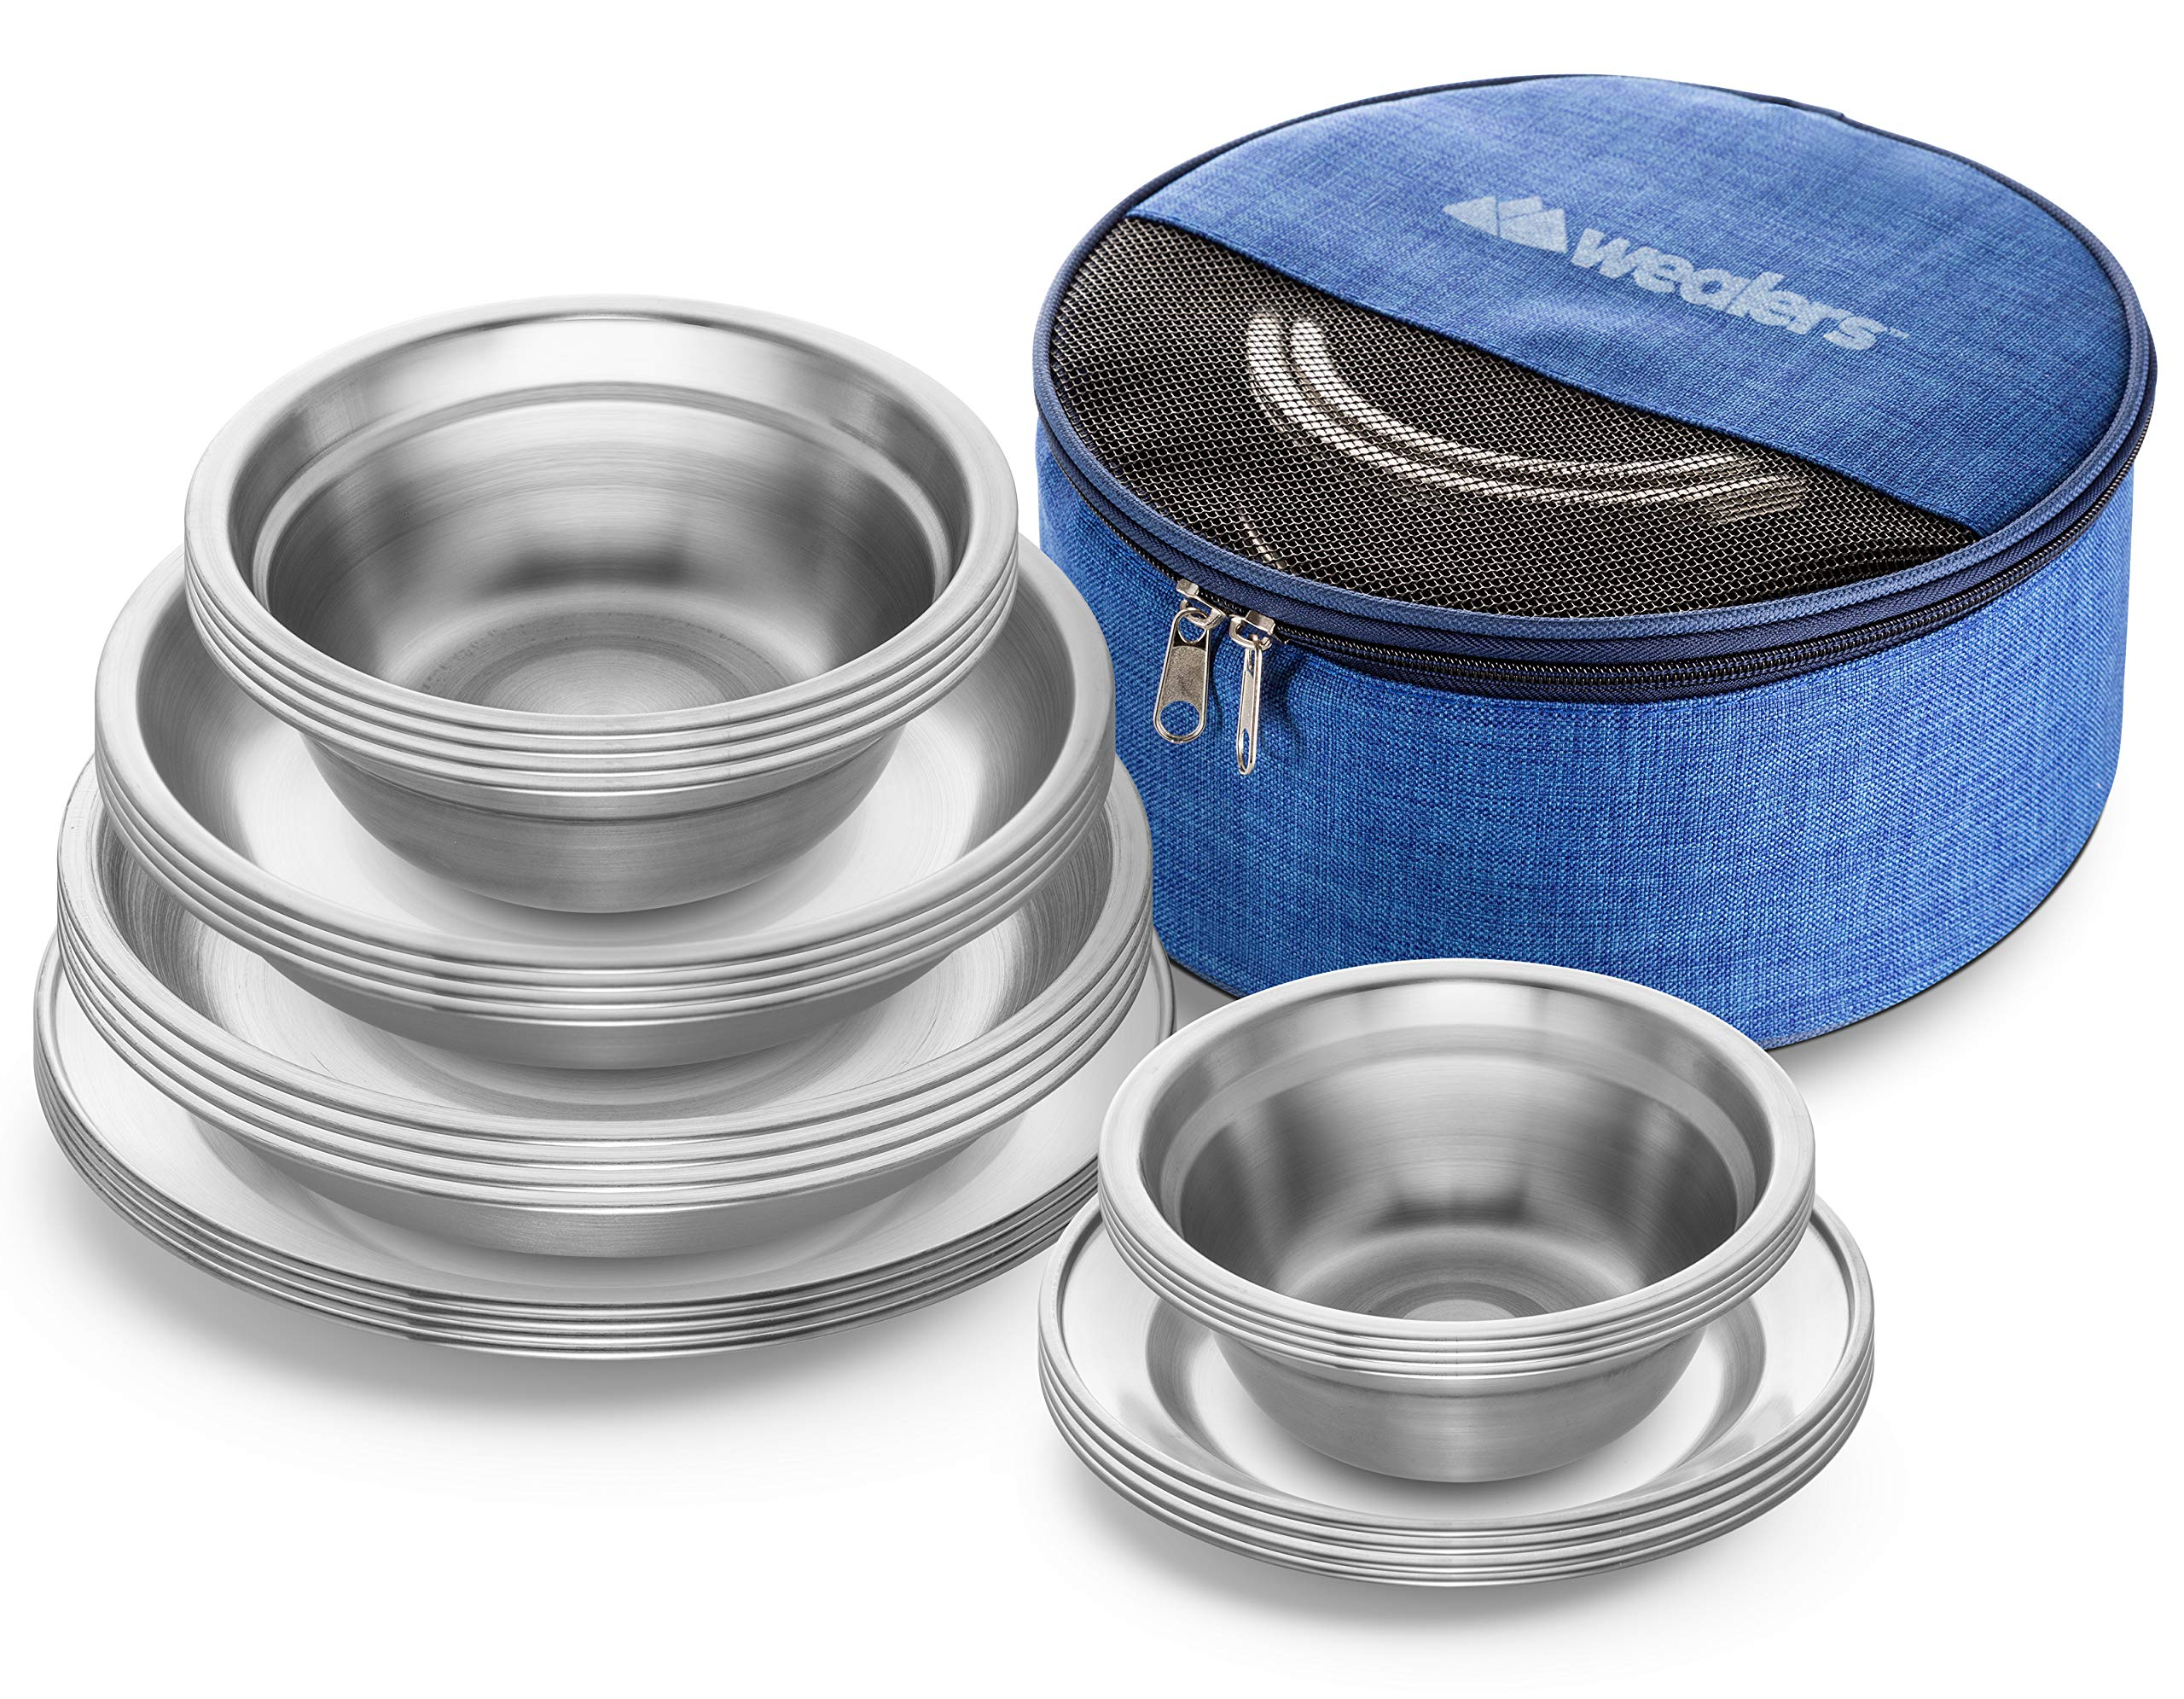 Wealers Stainless Steel Plates and Bowls Camping Set (24-Piece Kit) Small and Large Dinnerware for Kids, Adults, Family | Camping, Hiking, Beach, Outdoor Use | Incl. Travel Bag by Wealers